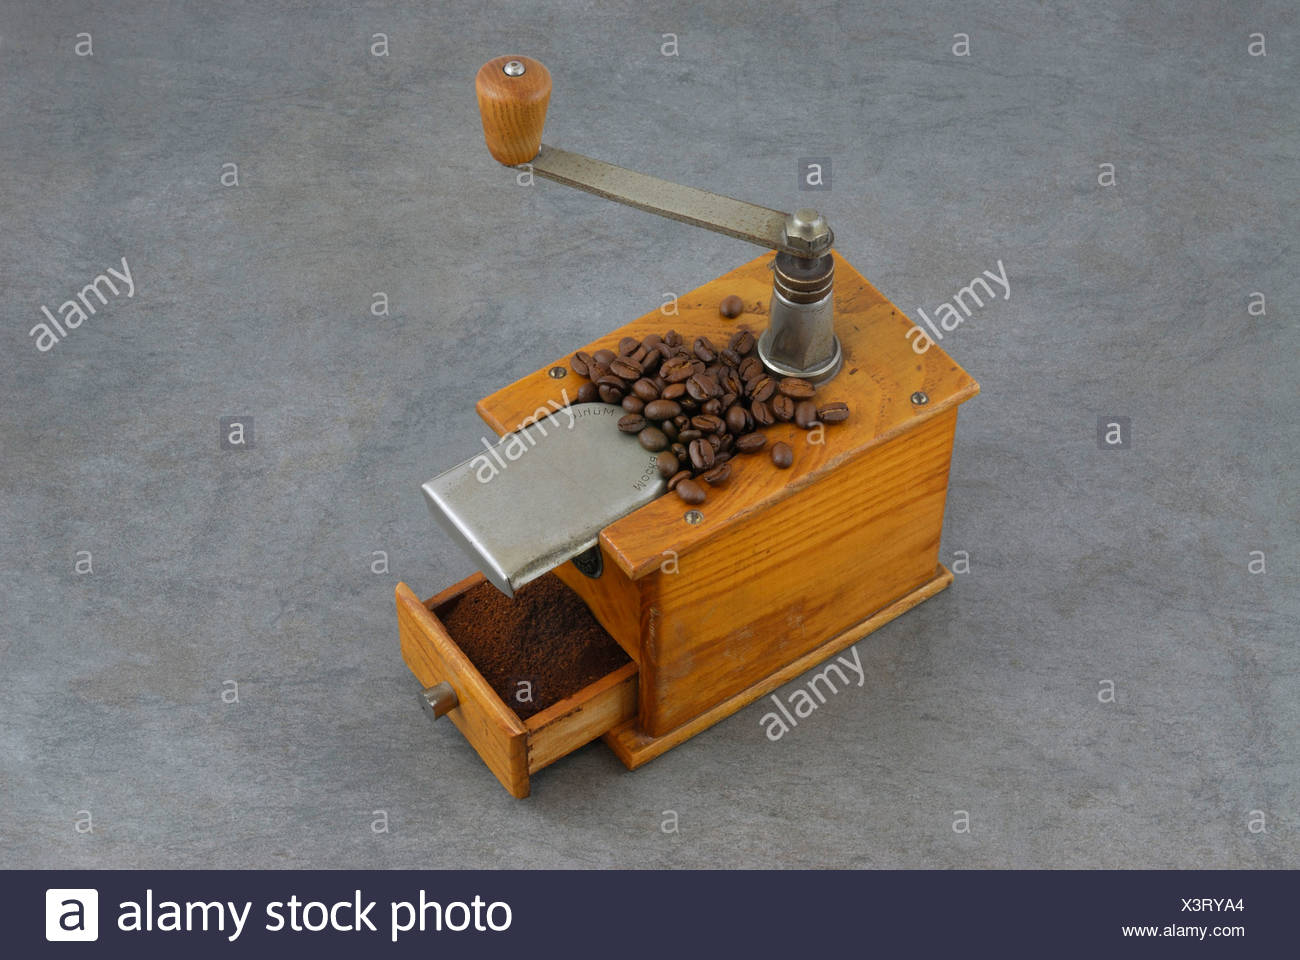 Antique Coffee Mill With Grinding Drawer Full Of Freshly Ground